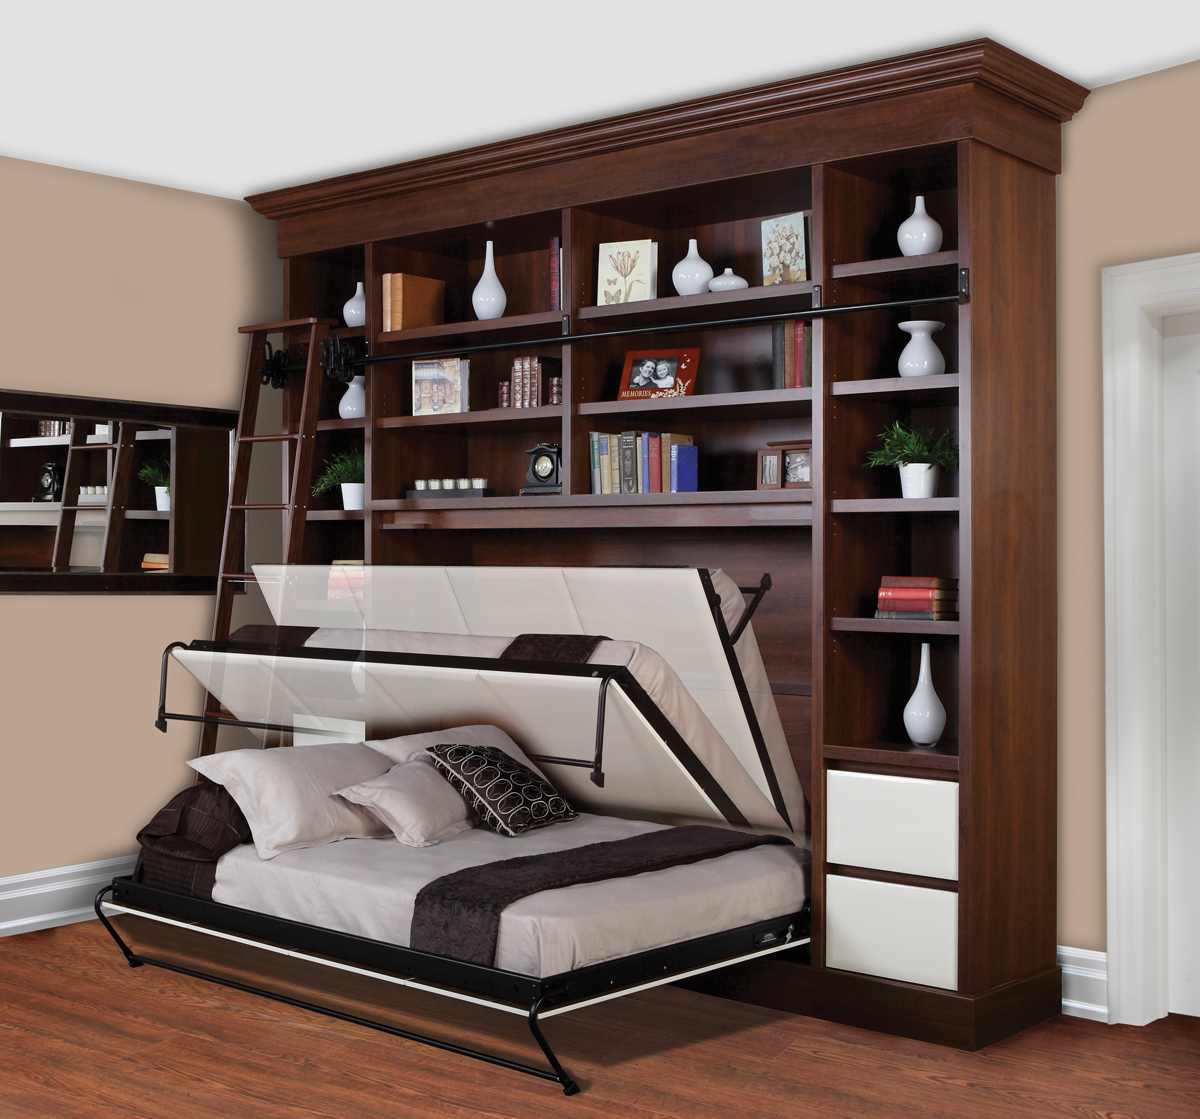 Painted wooden patio furniture - Comfortable Bedroom Design With Murphy Bed Kit Lowes